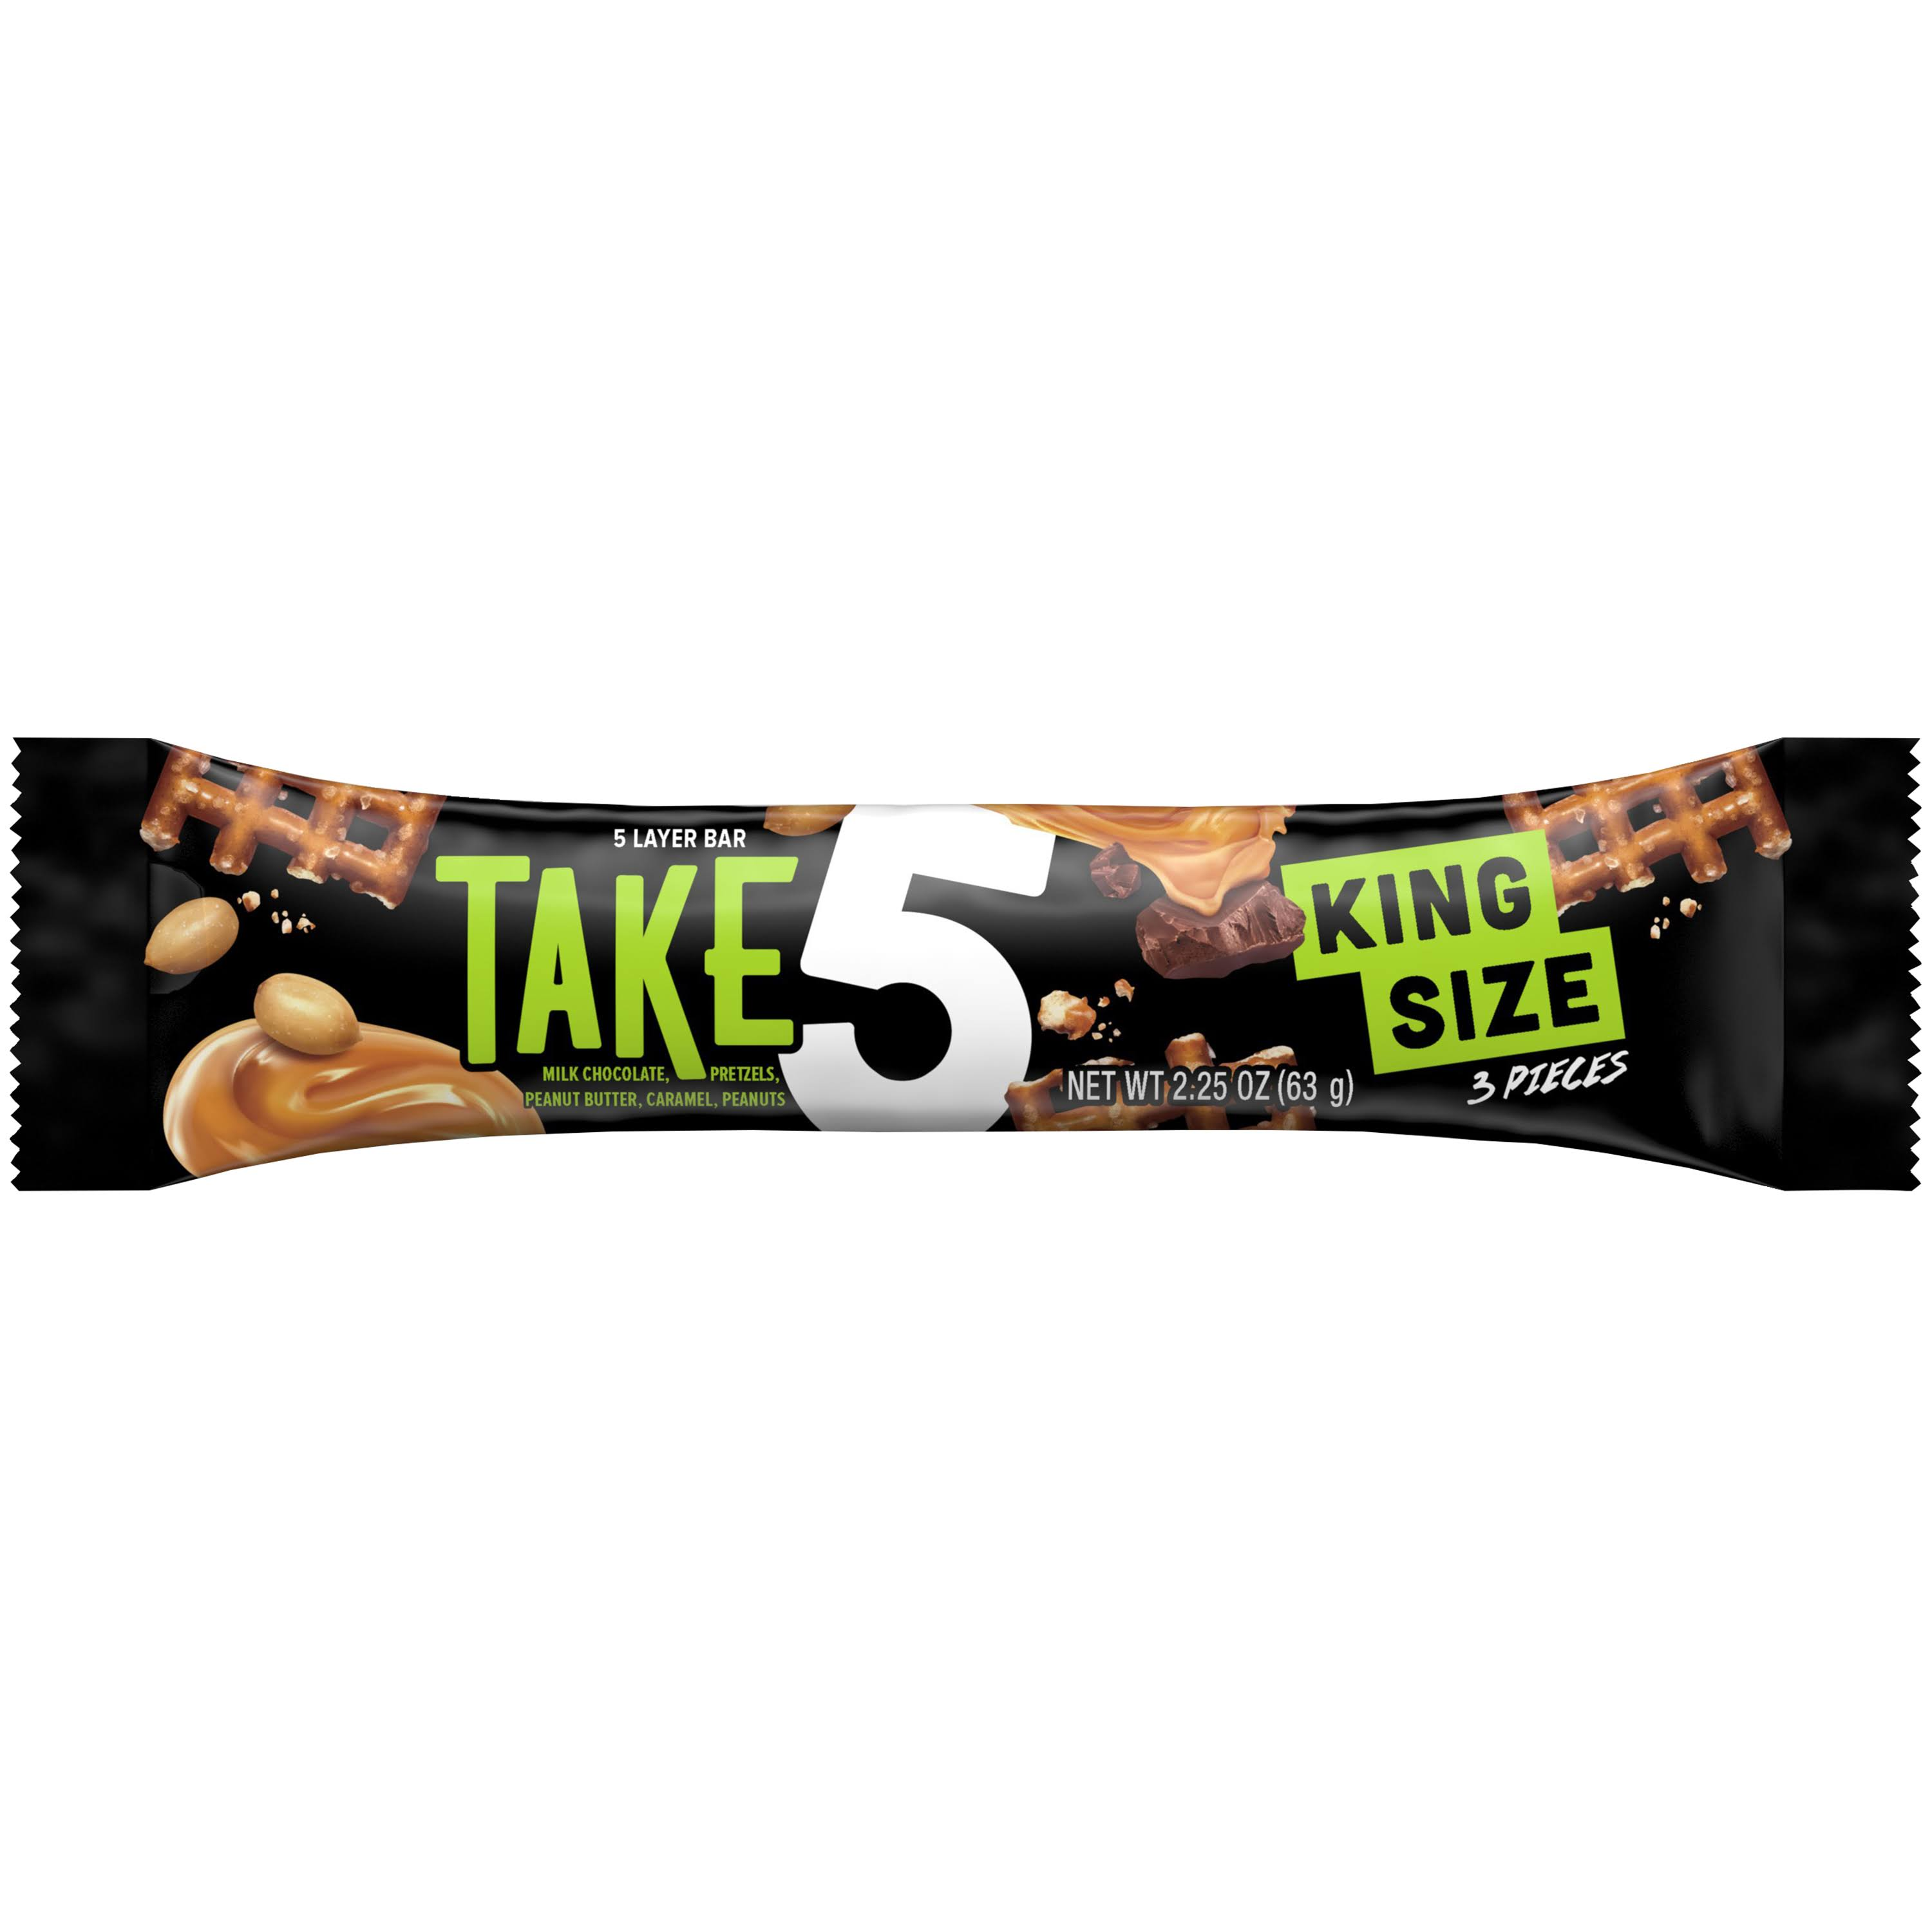 Take 5 King Size Candy Bar - 2.25 oz total